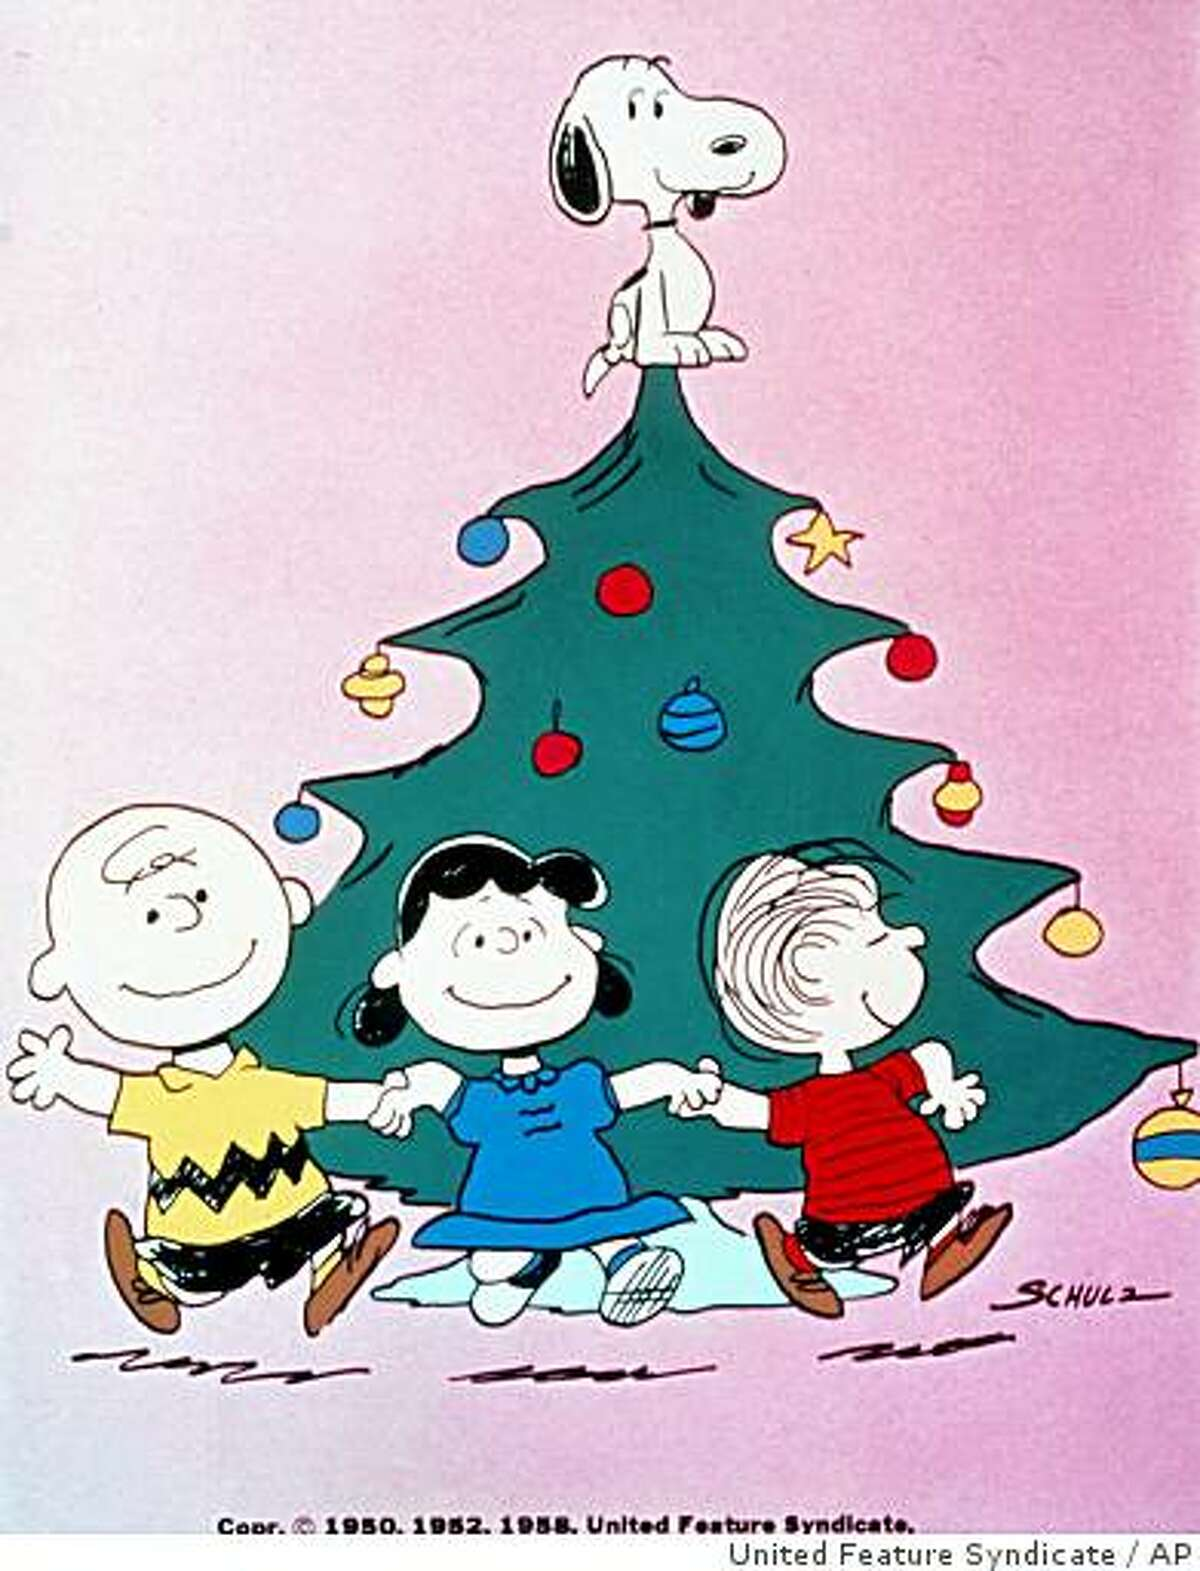 With Snoopy atop the tree, Charlie Brown, Lucy and Linus celebrate the holiday season in